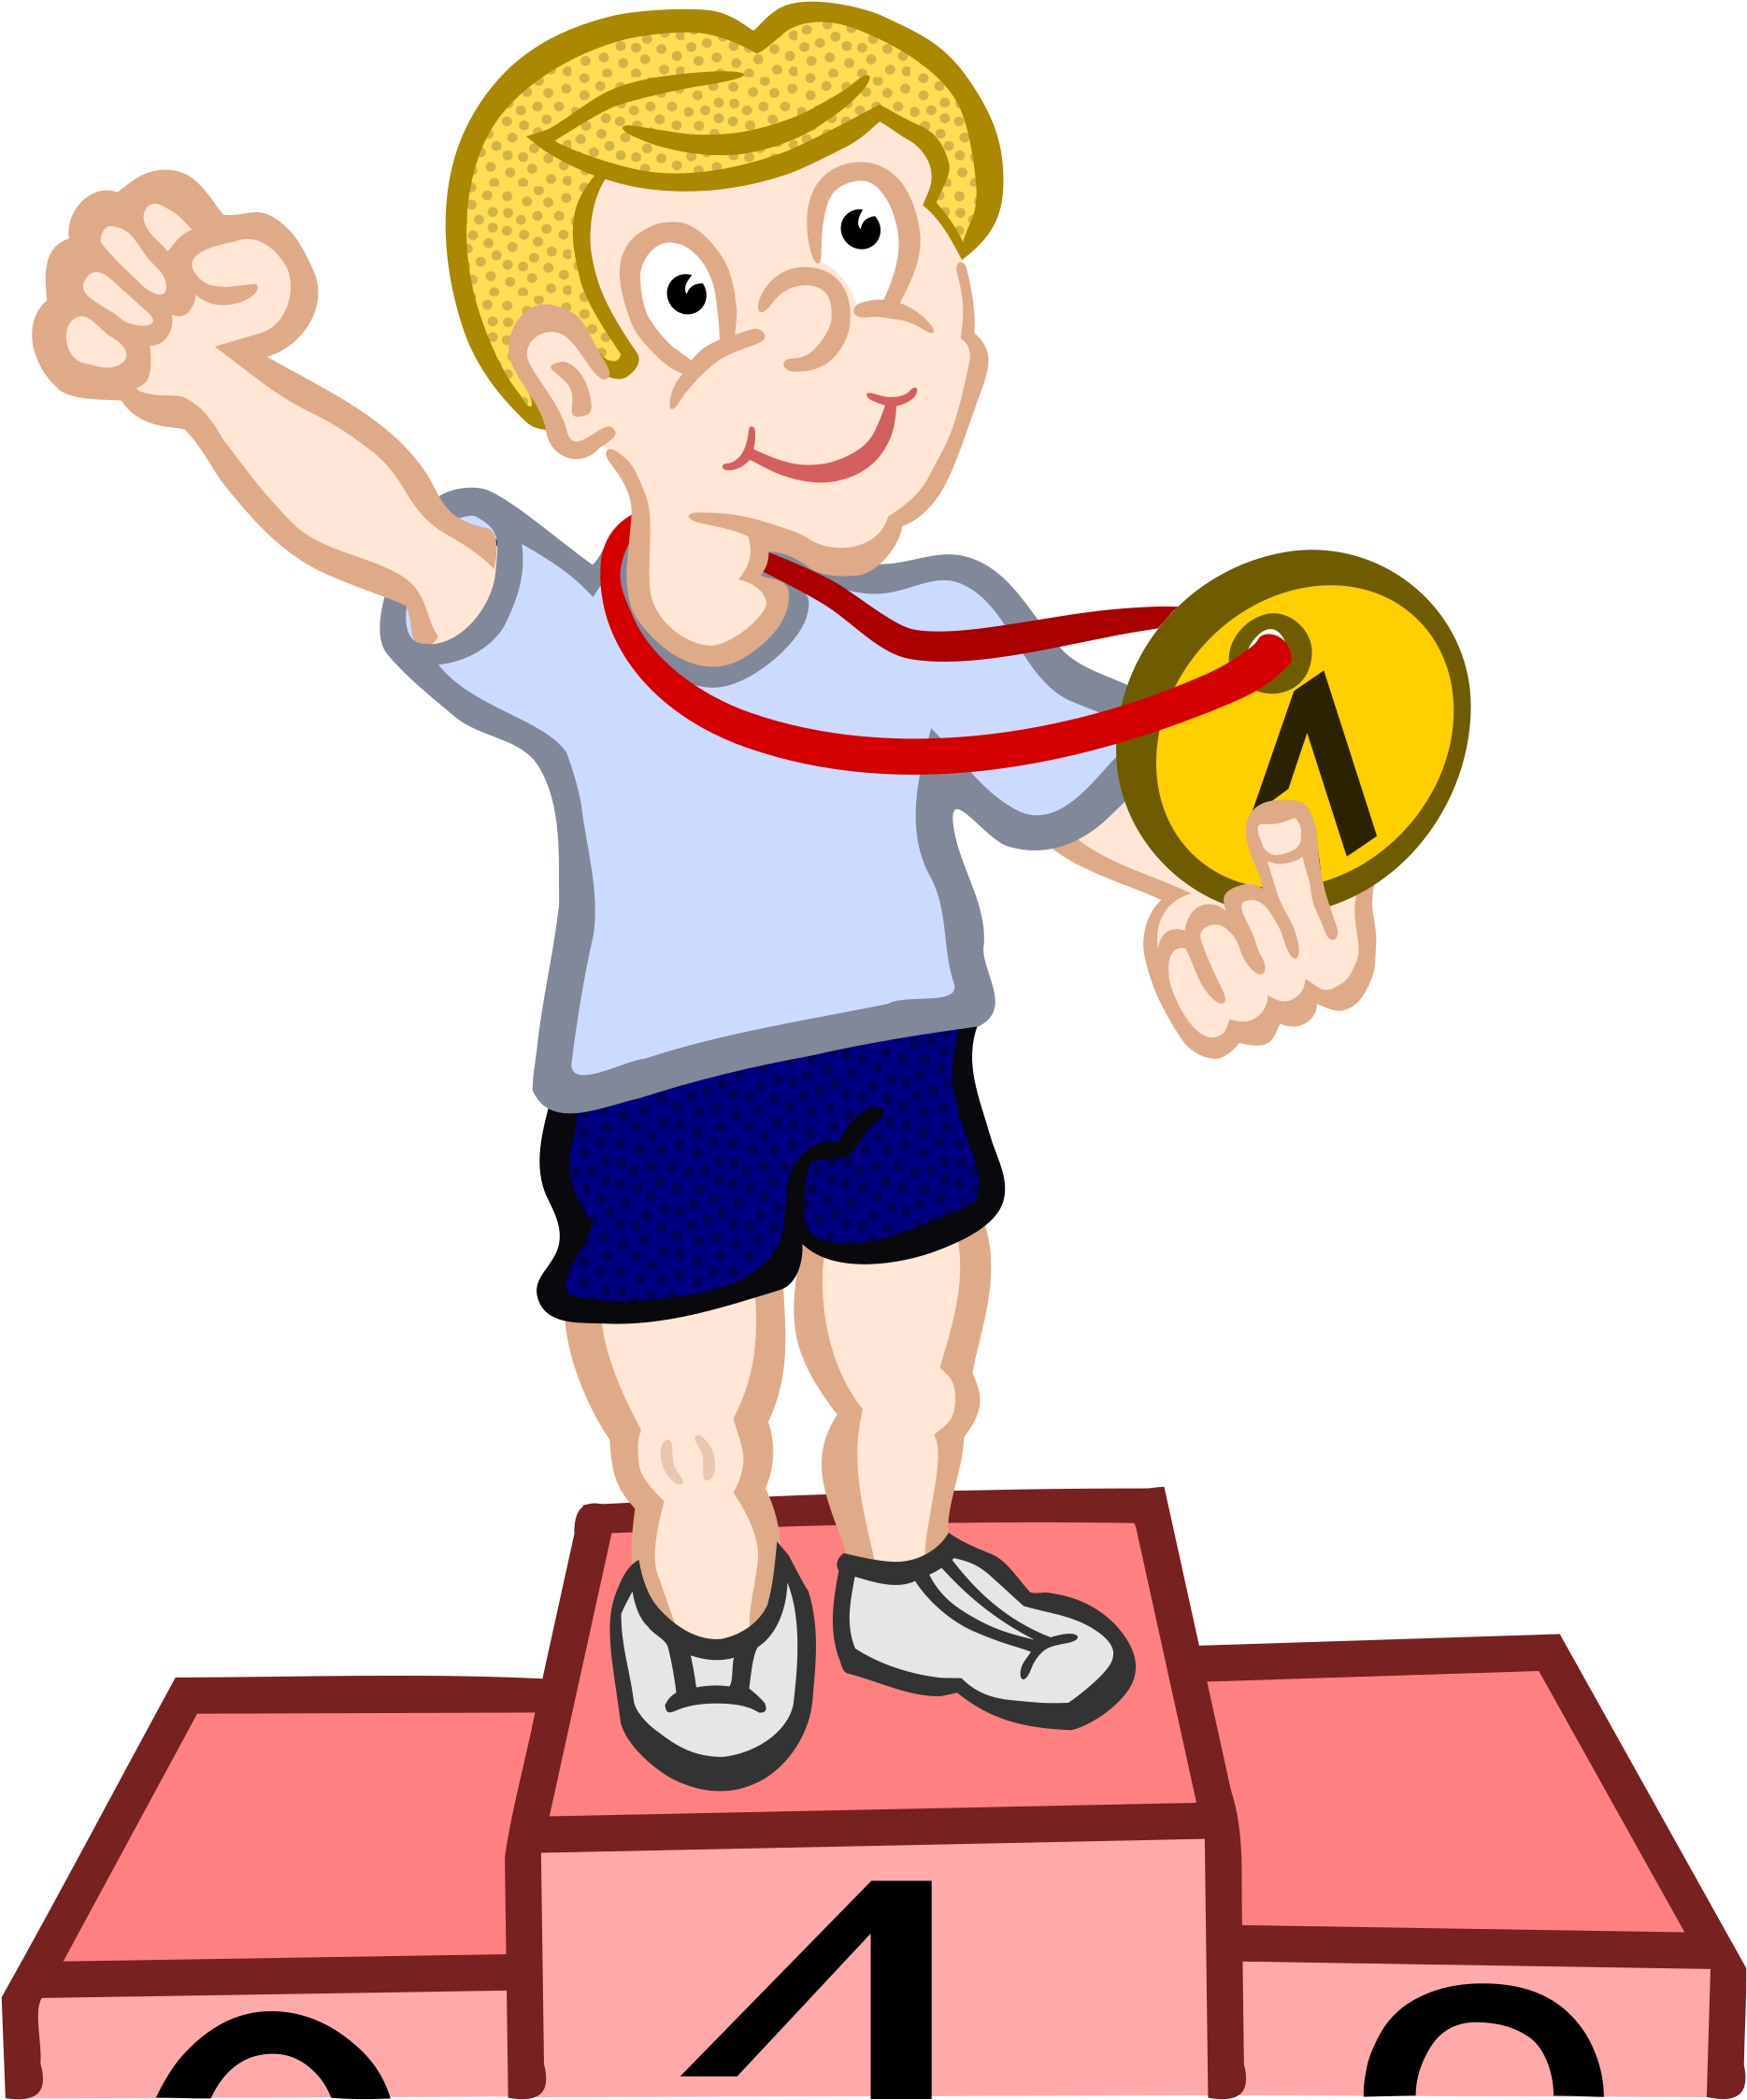 Winner clipart sport winner. Win png x download